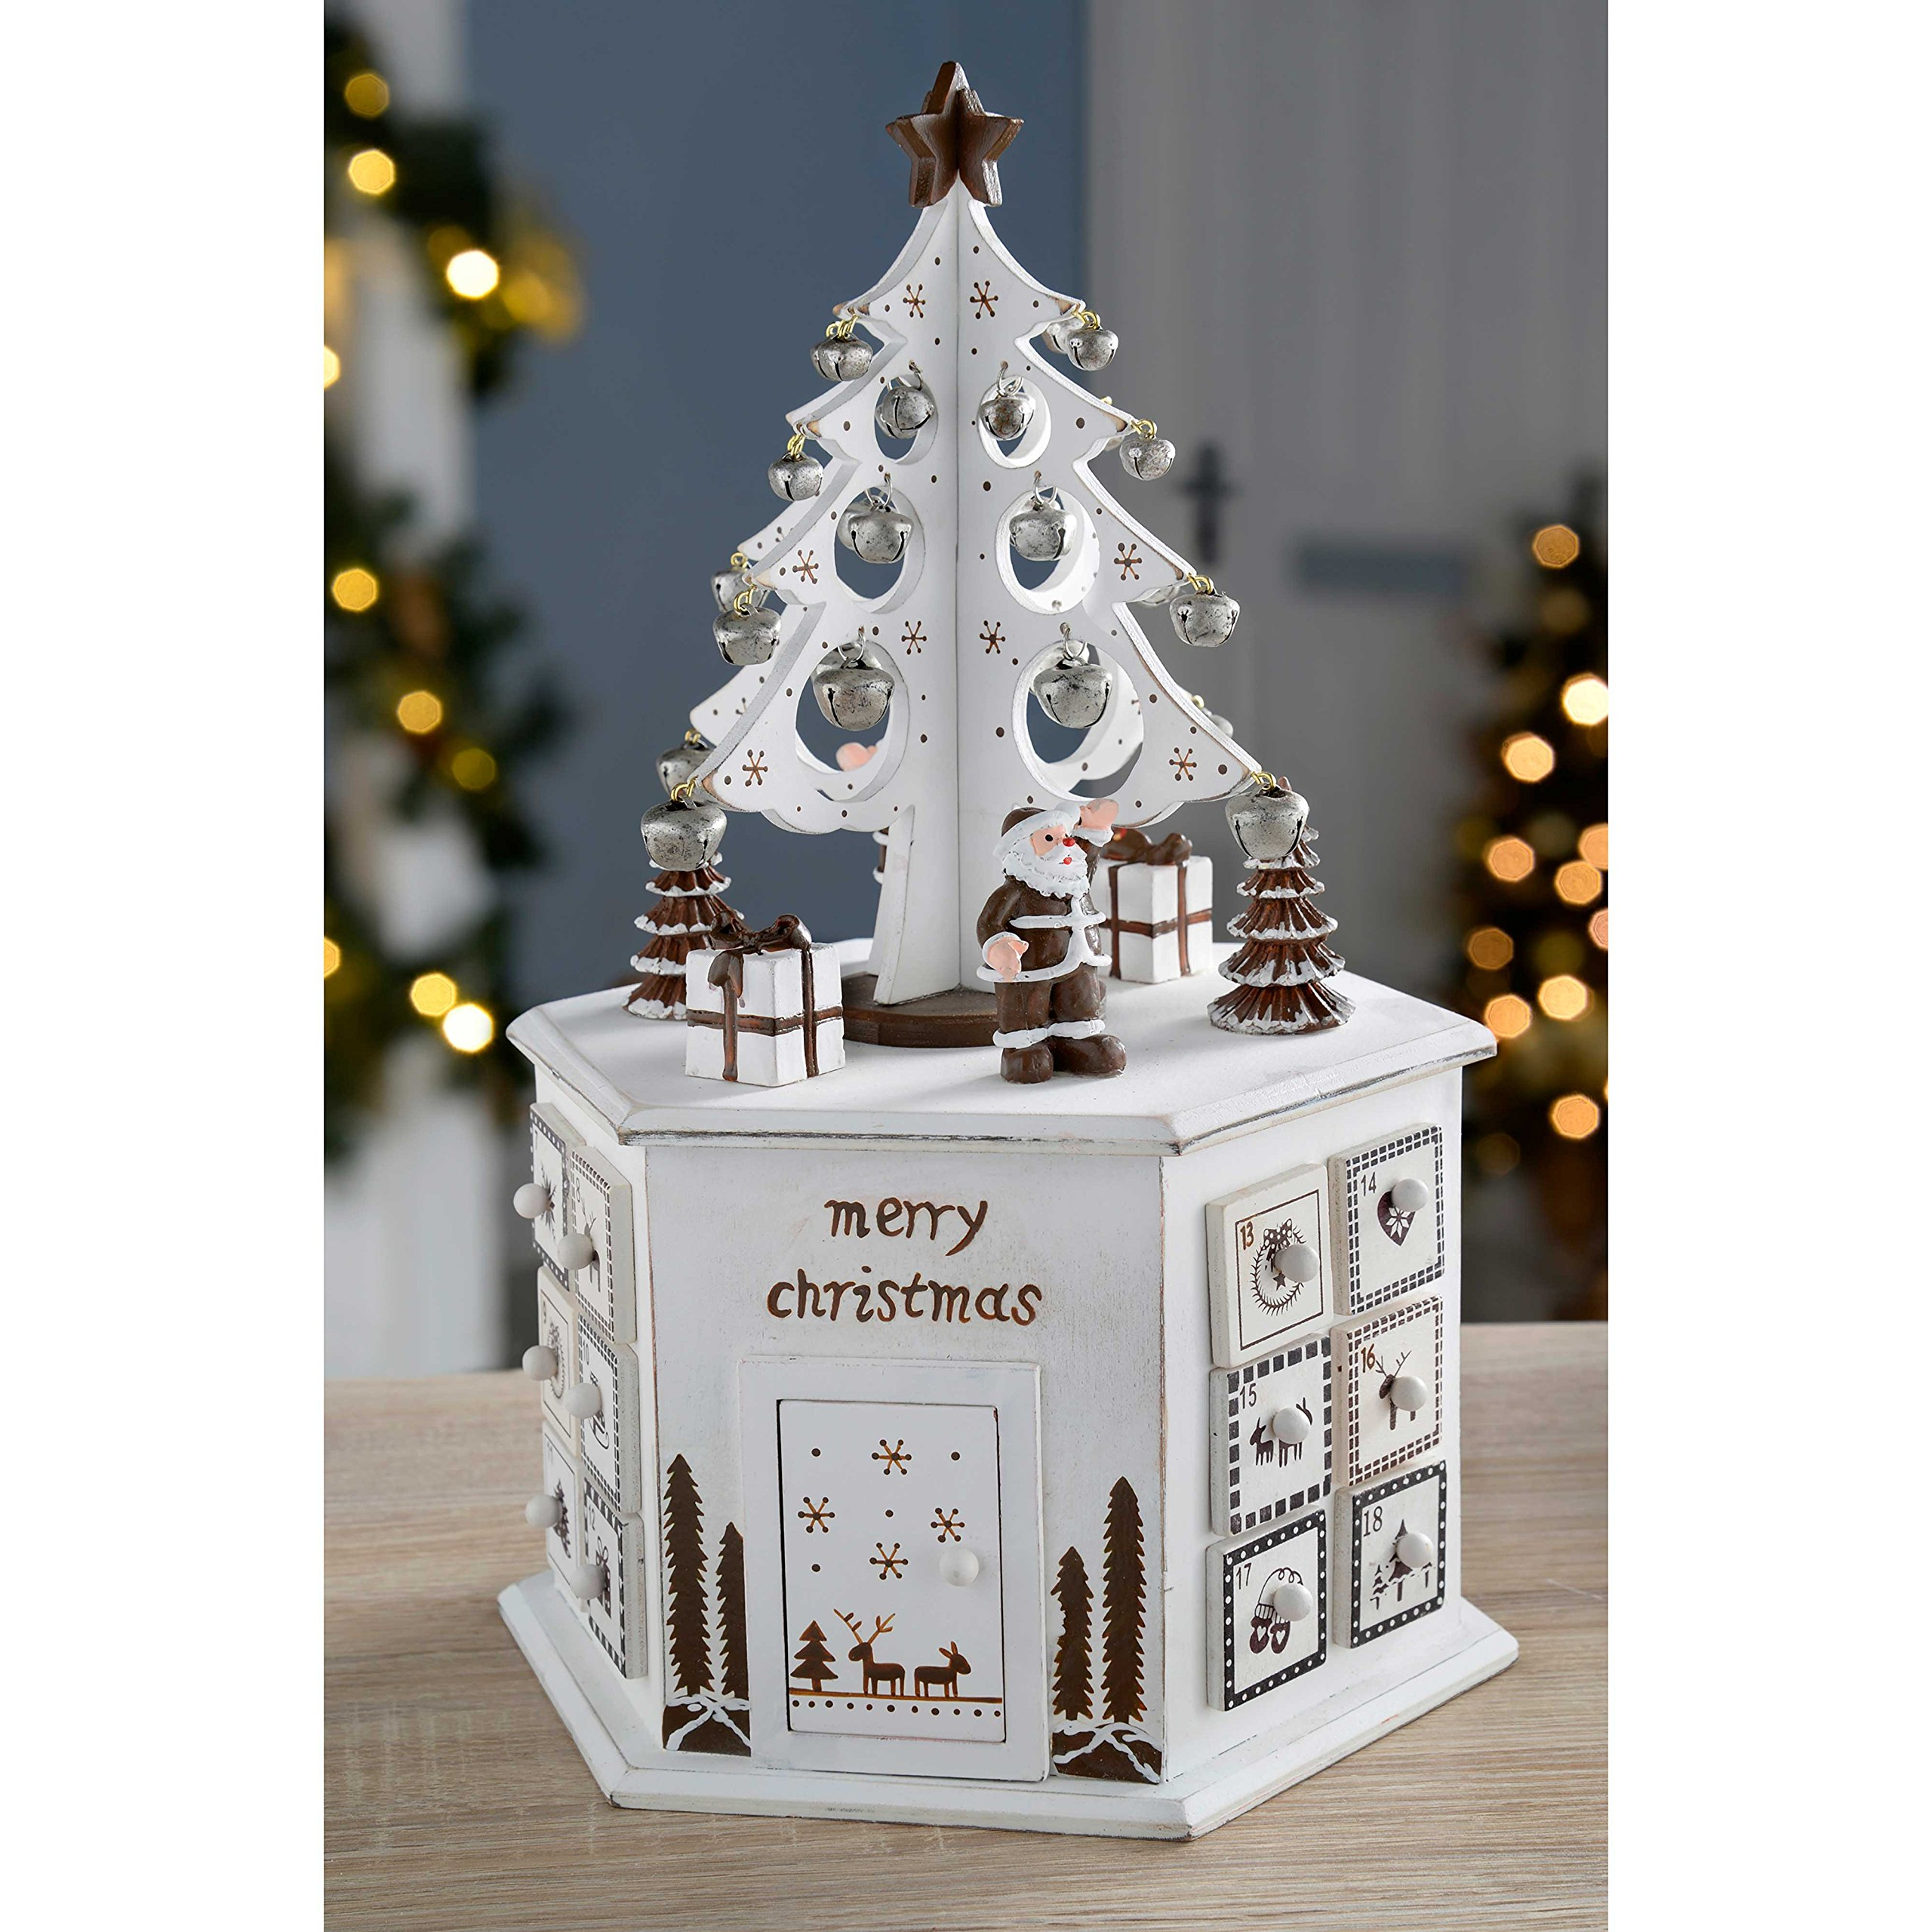 WeRChristmas Wooden Tree Advent Calendar Tower Christmas Decoration, 36 Cm - White by WeRChristmas (Image #2)